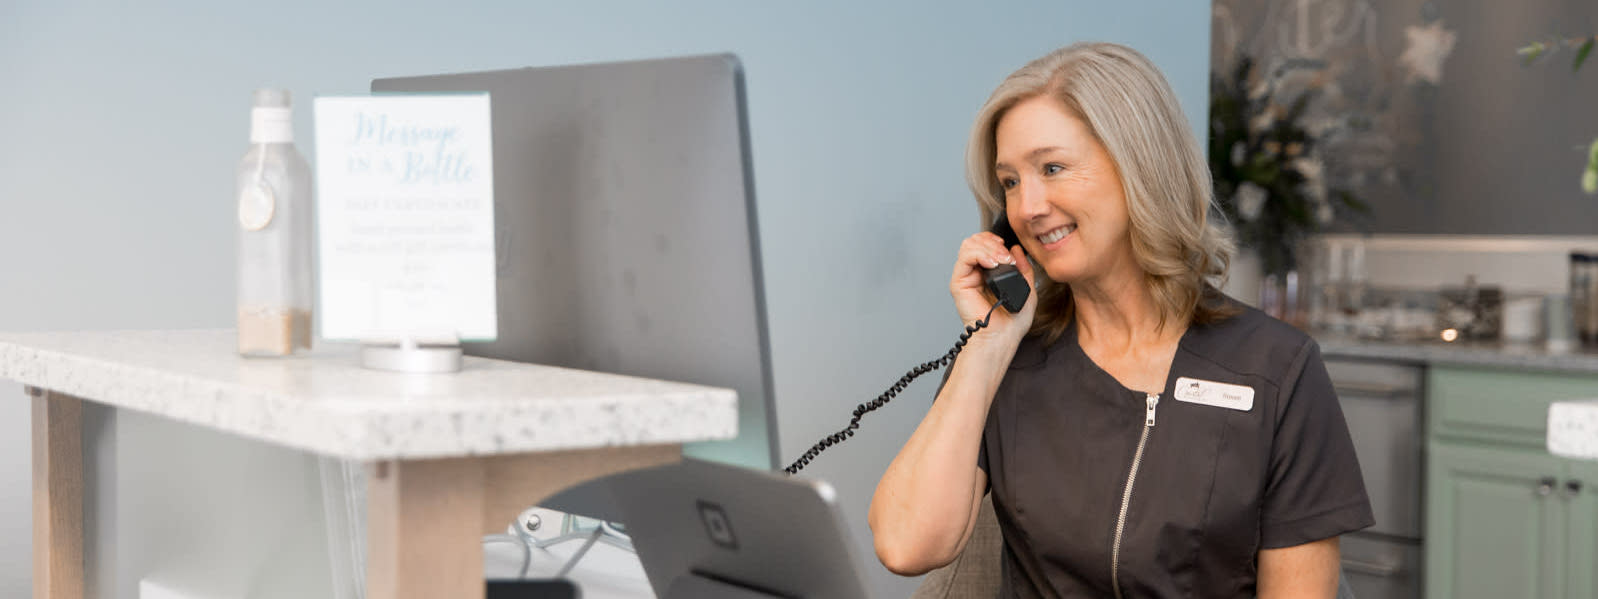 spa receptionist on the phone